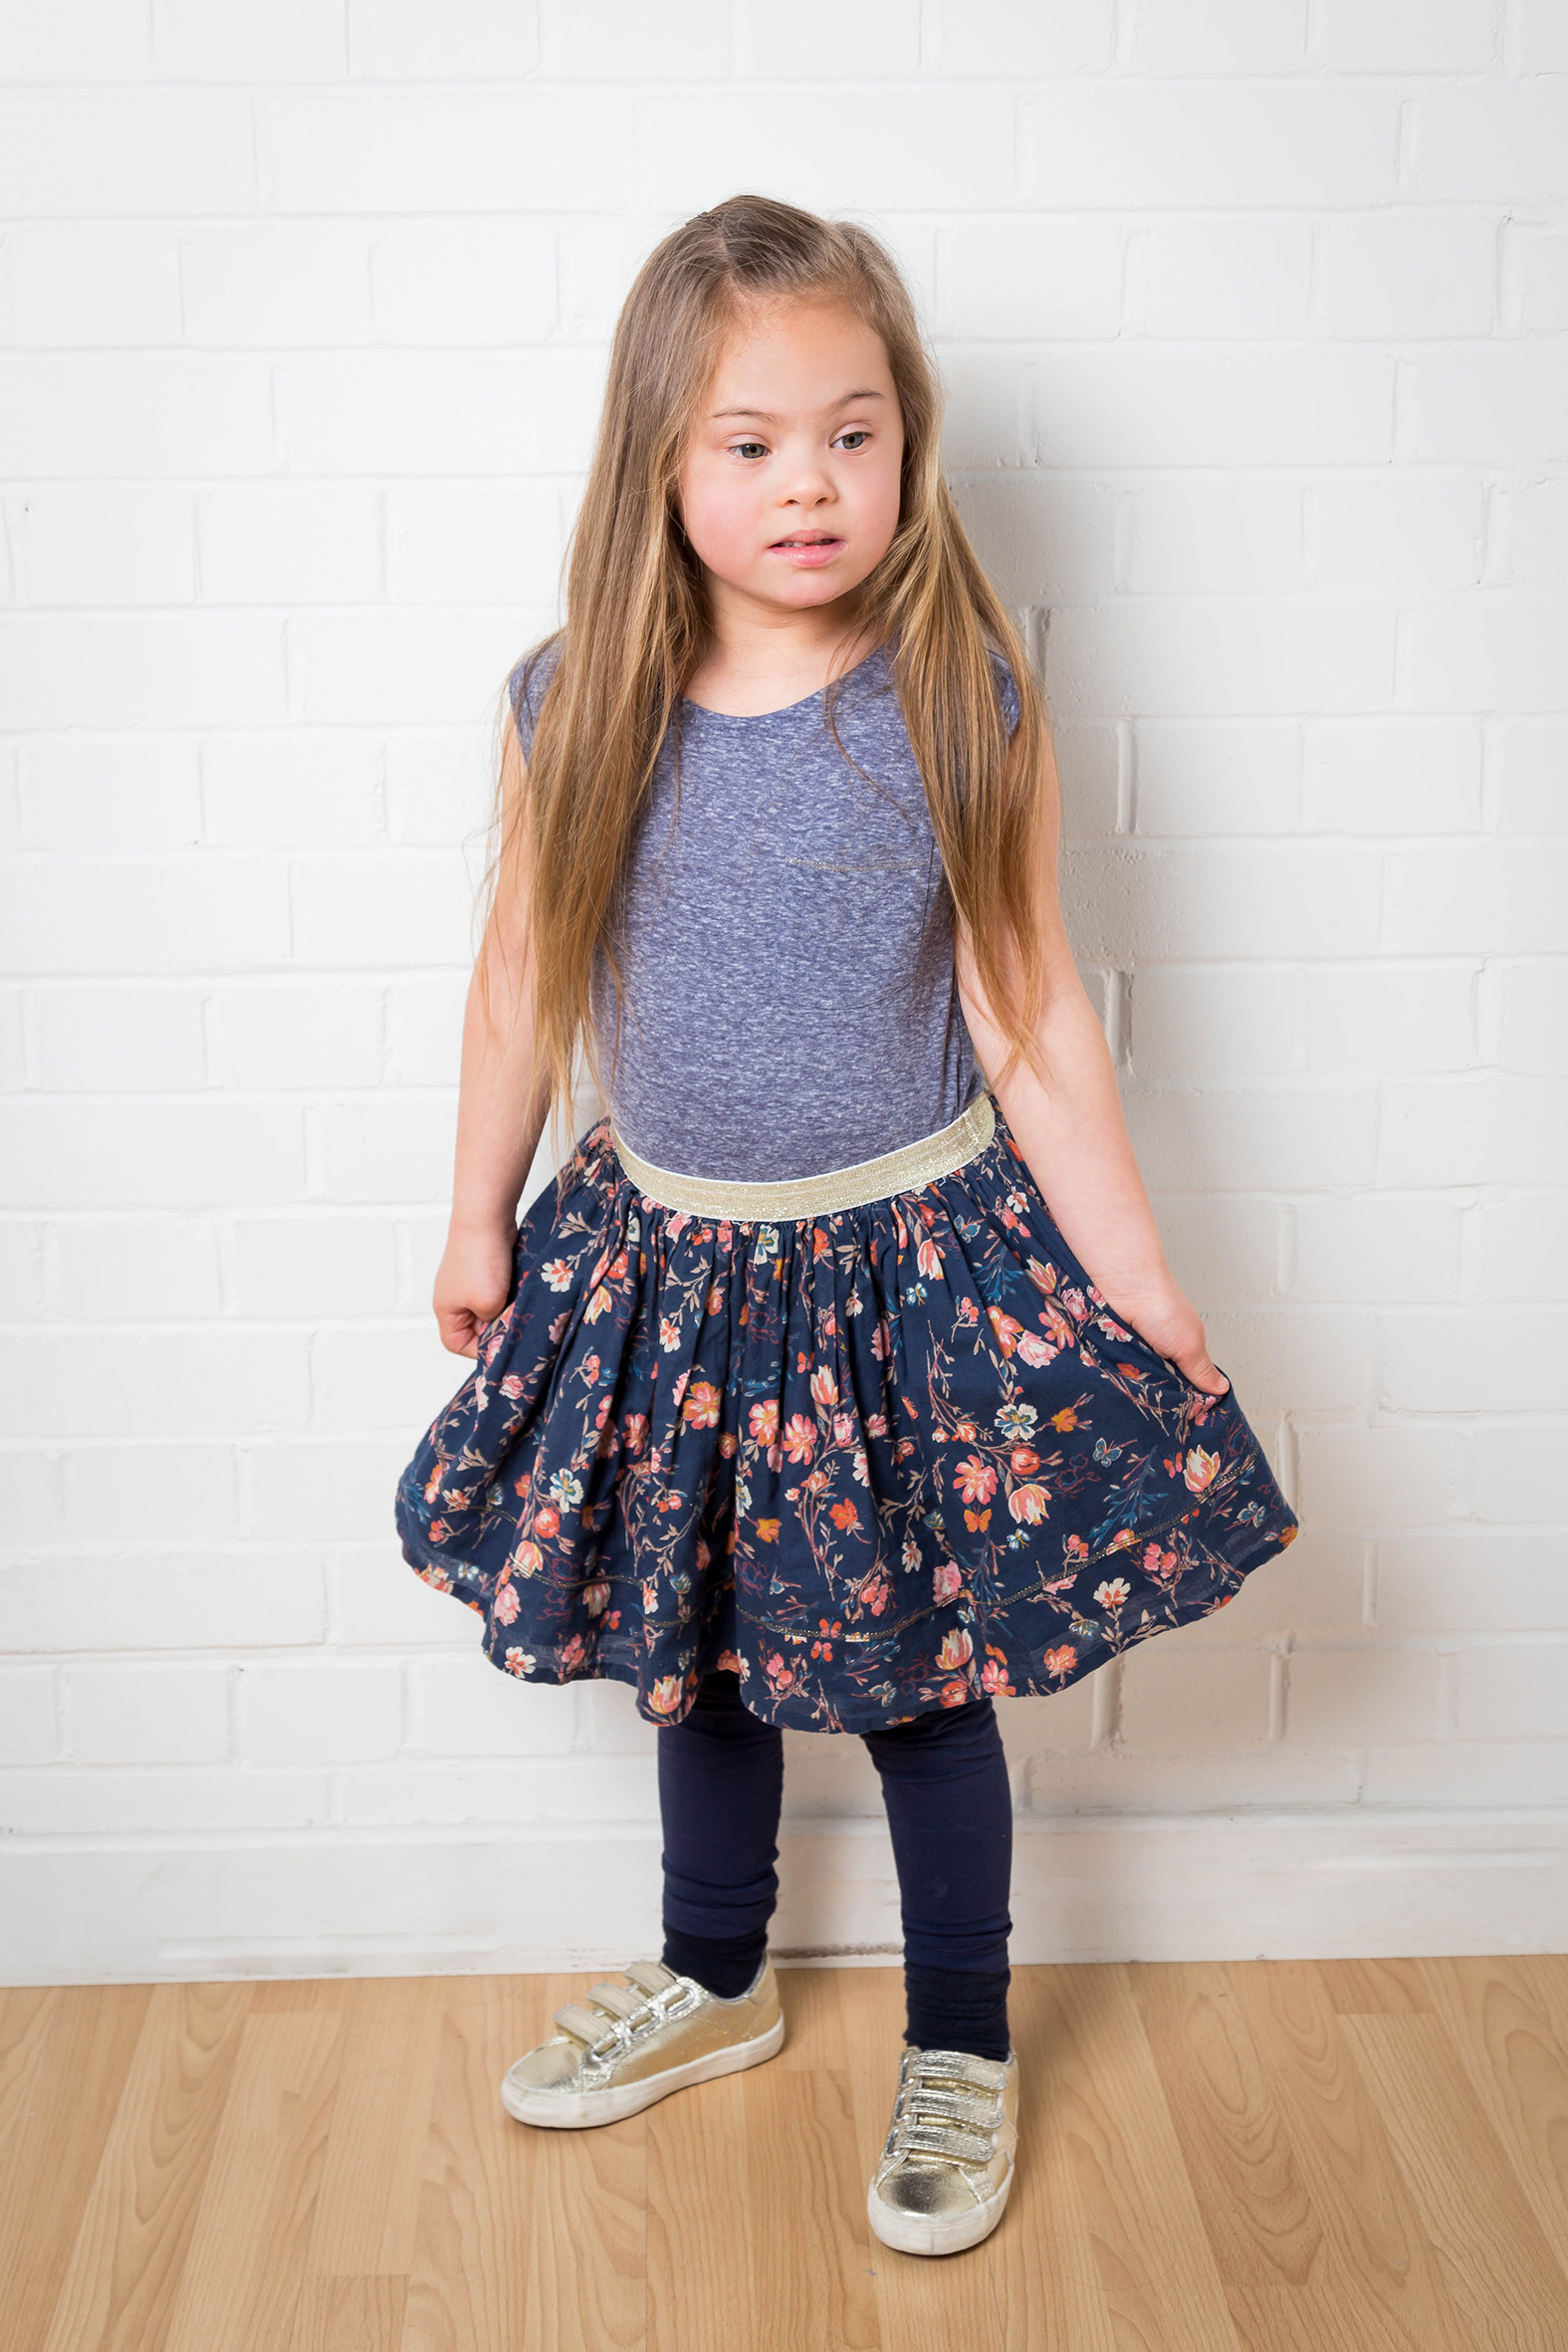 Maia, Down Syndrome model, Zebedee Management, disabled, model agency, disability, girl 05